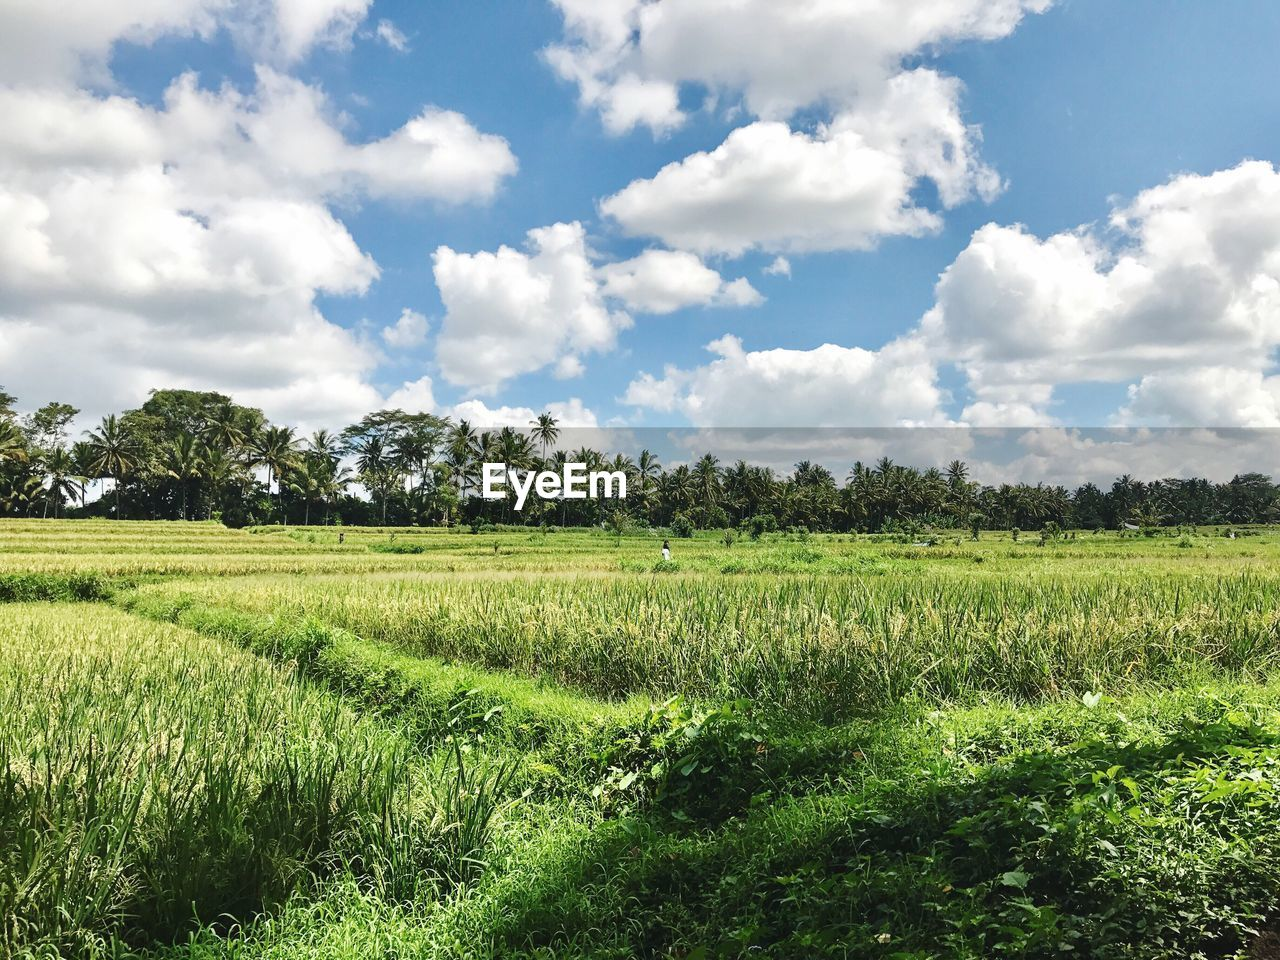 agriculture, field, growth, nature, landscape, sky, green color, cloud - sky, tranquility, no people, rural scene, scenics, tranquil scene, crop, beauty in nature, day, tree, rice paddy, outdoors, grass